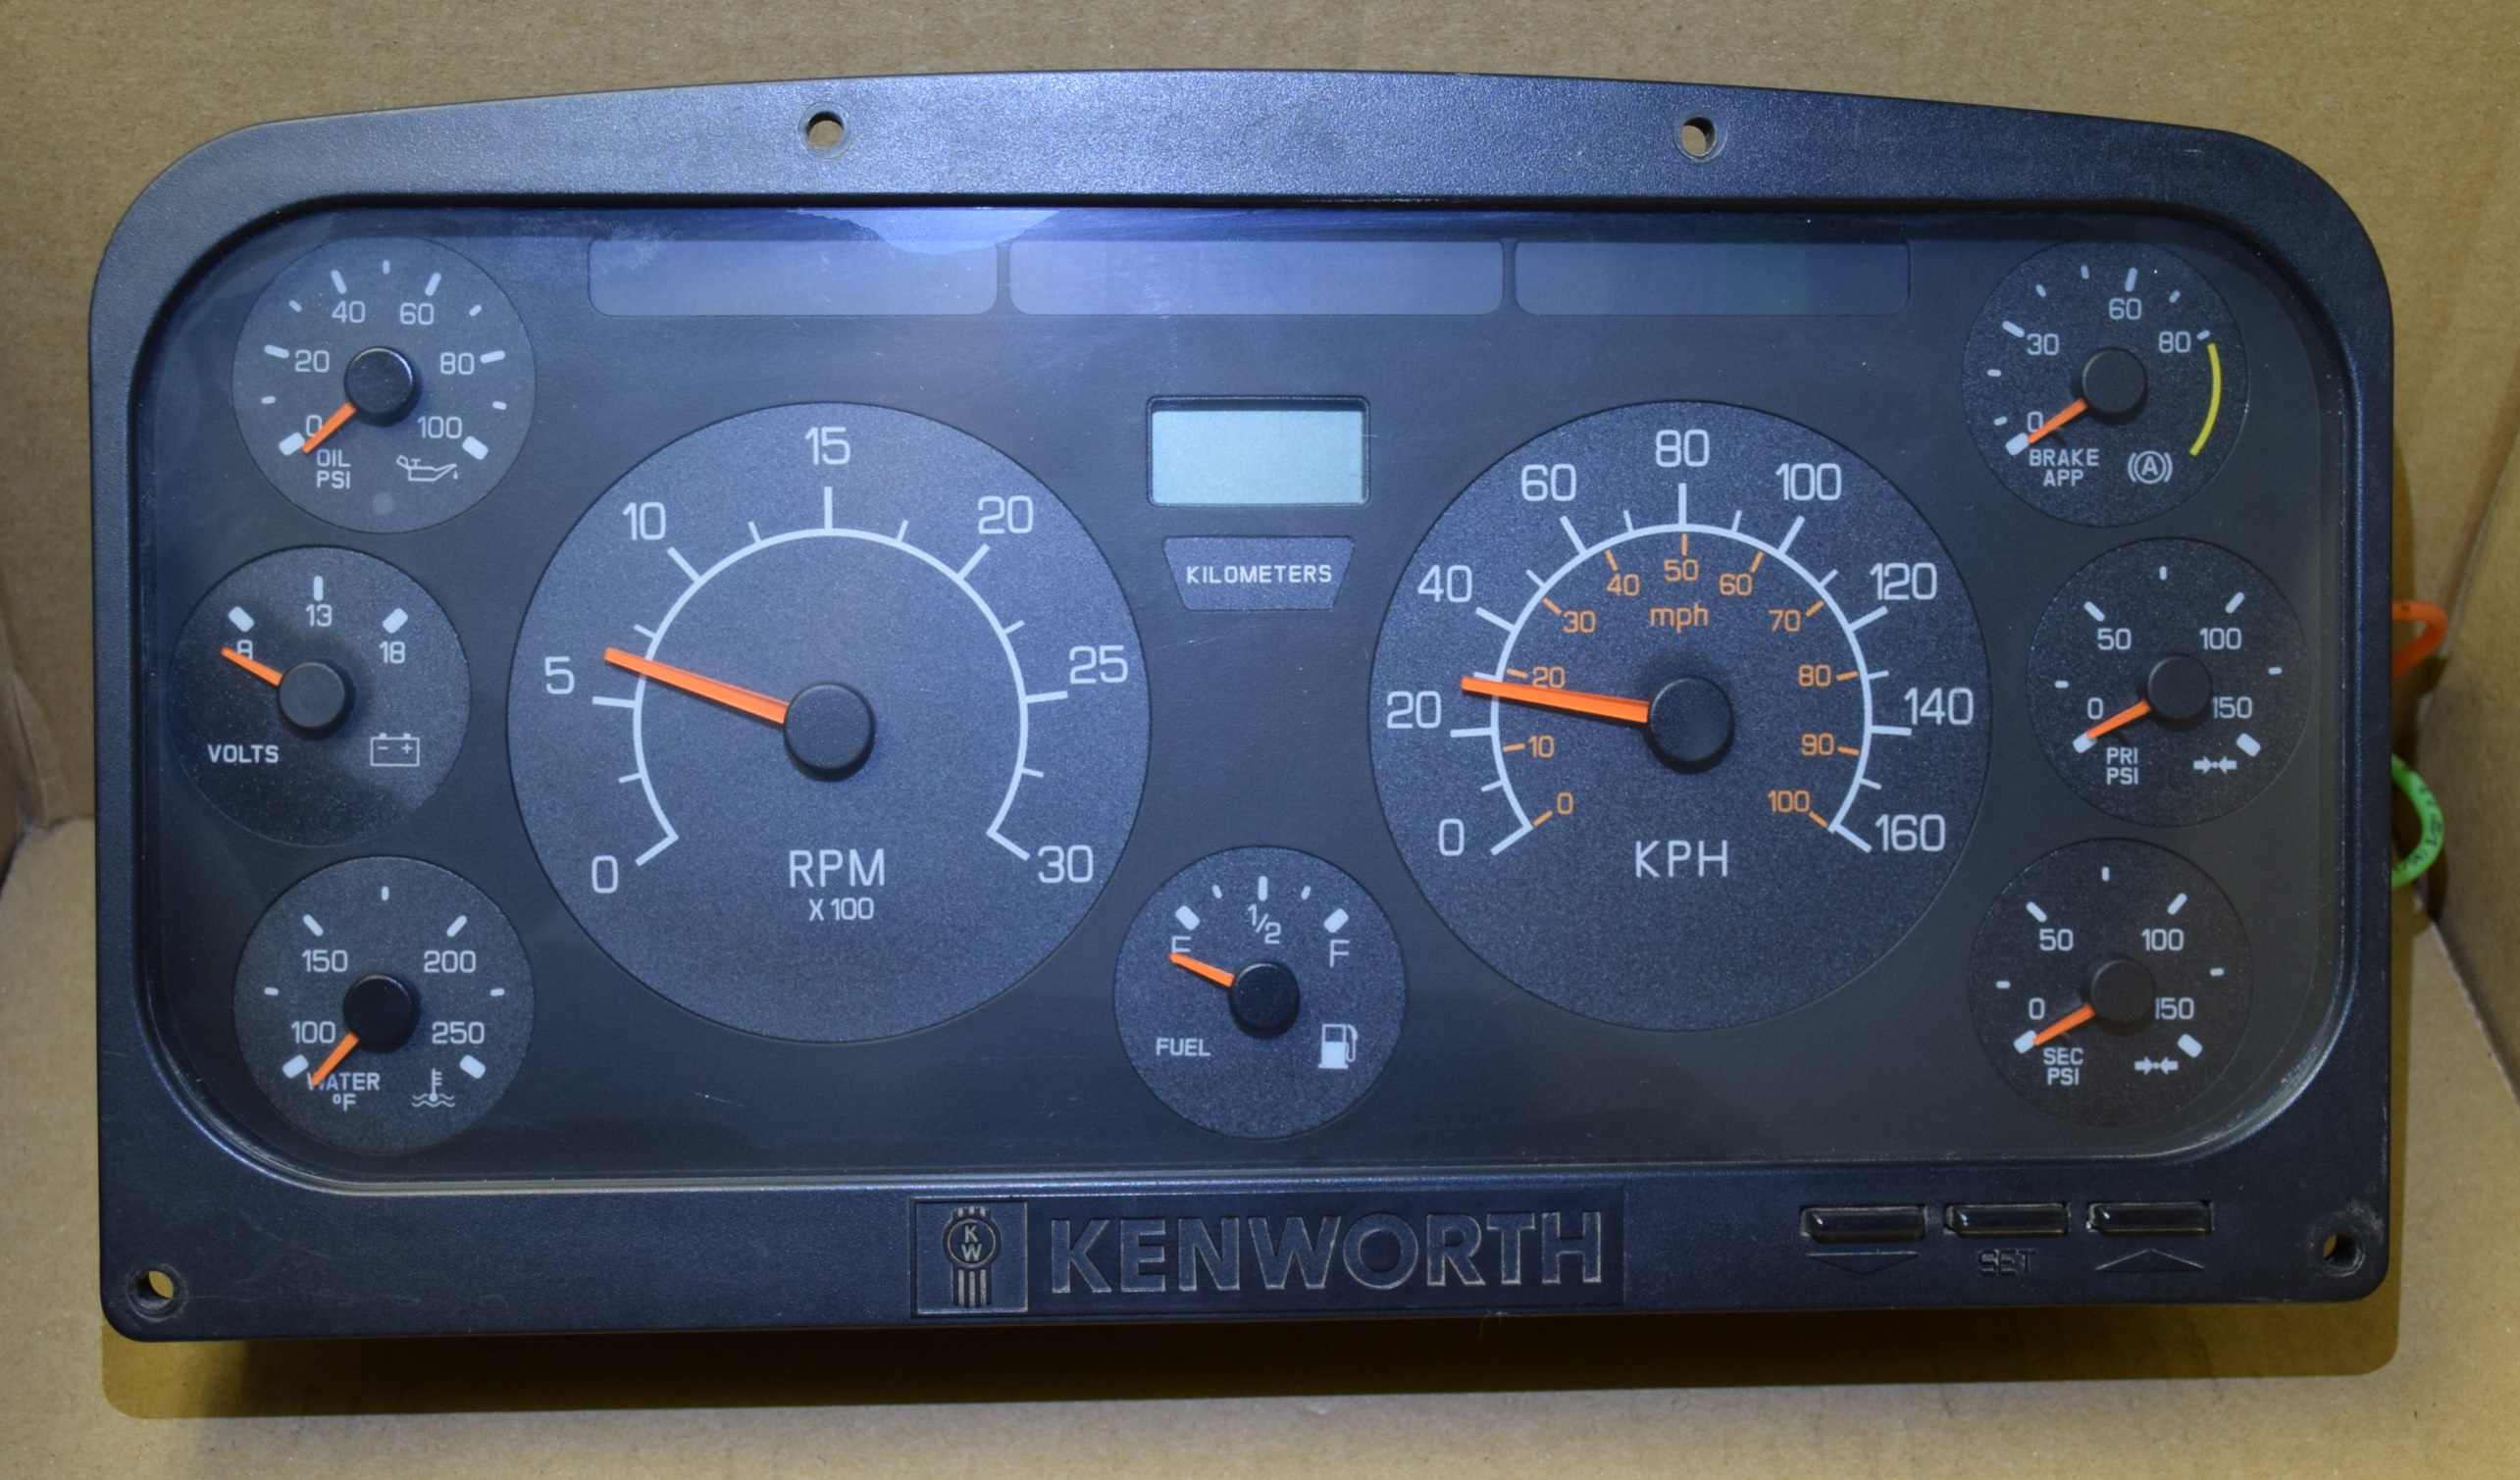 2004 KENWORTH T2000 USED DASHBOARD INSTRUMENT CLUSTER FOR SALE (KM/H)